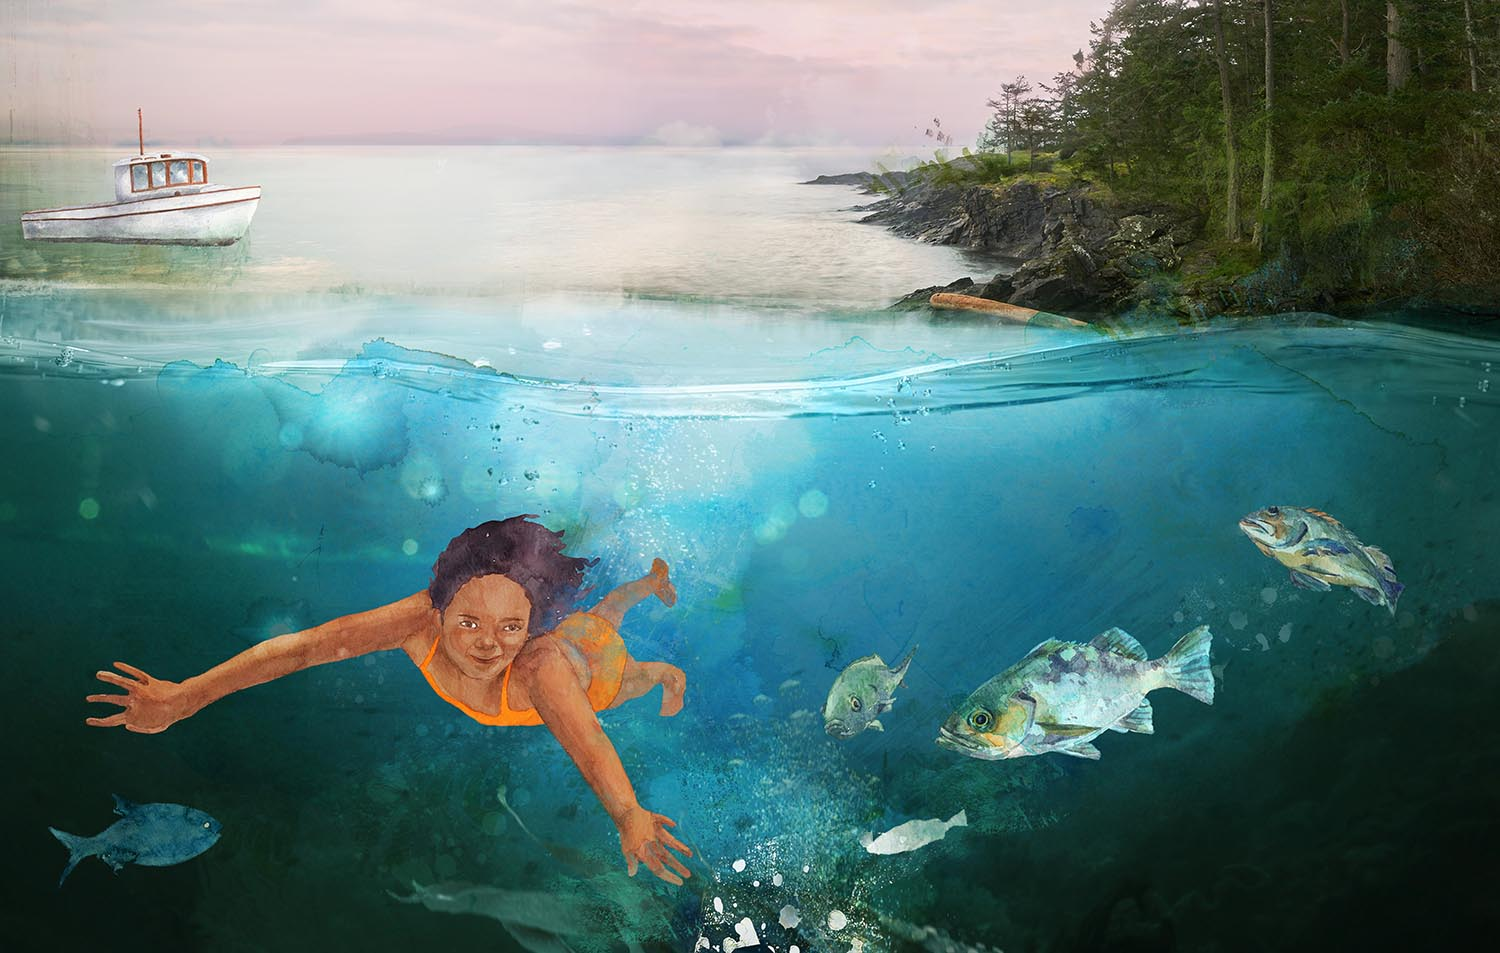 Interior illustration for 'Swimming with Seals' published by Orca Book Publishers